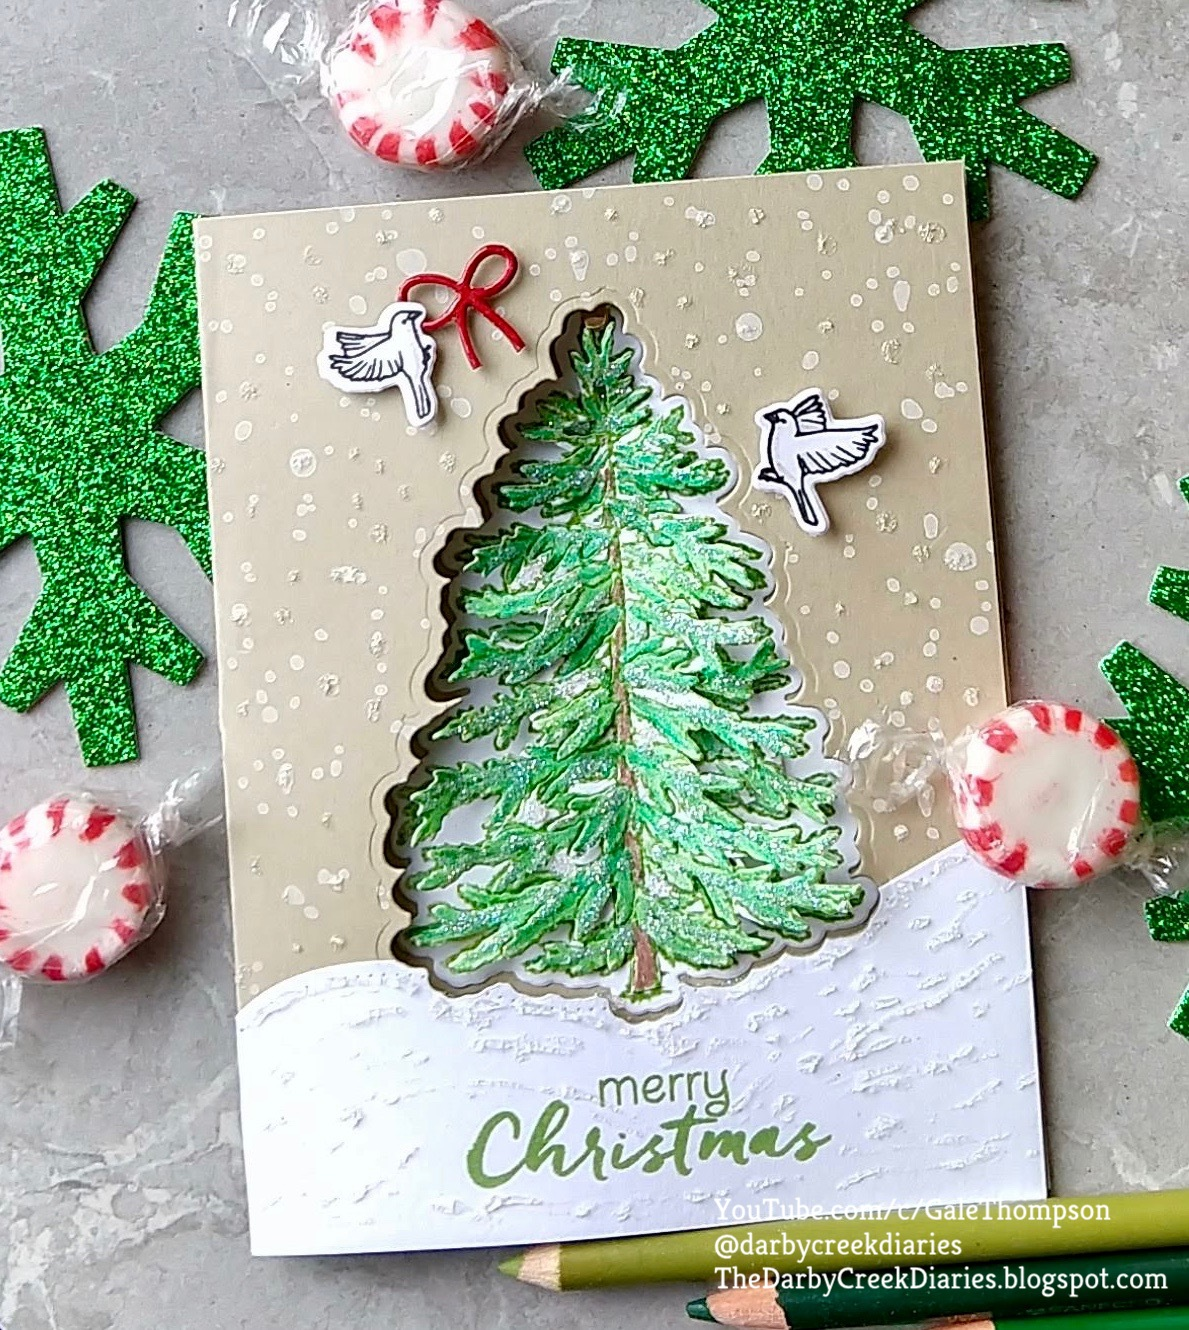 The Darby Creek Diaries: Oh Christmas Tree! How to Make a 3D Tree Card